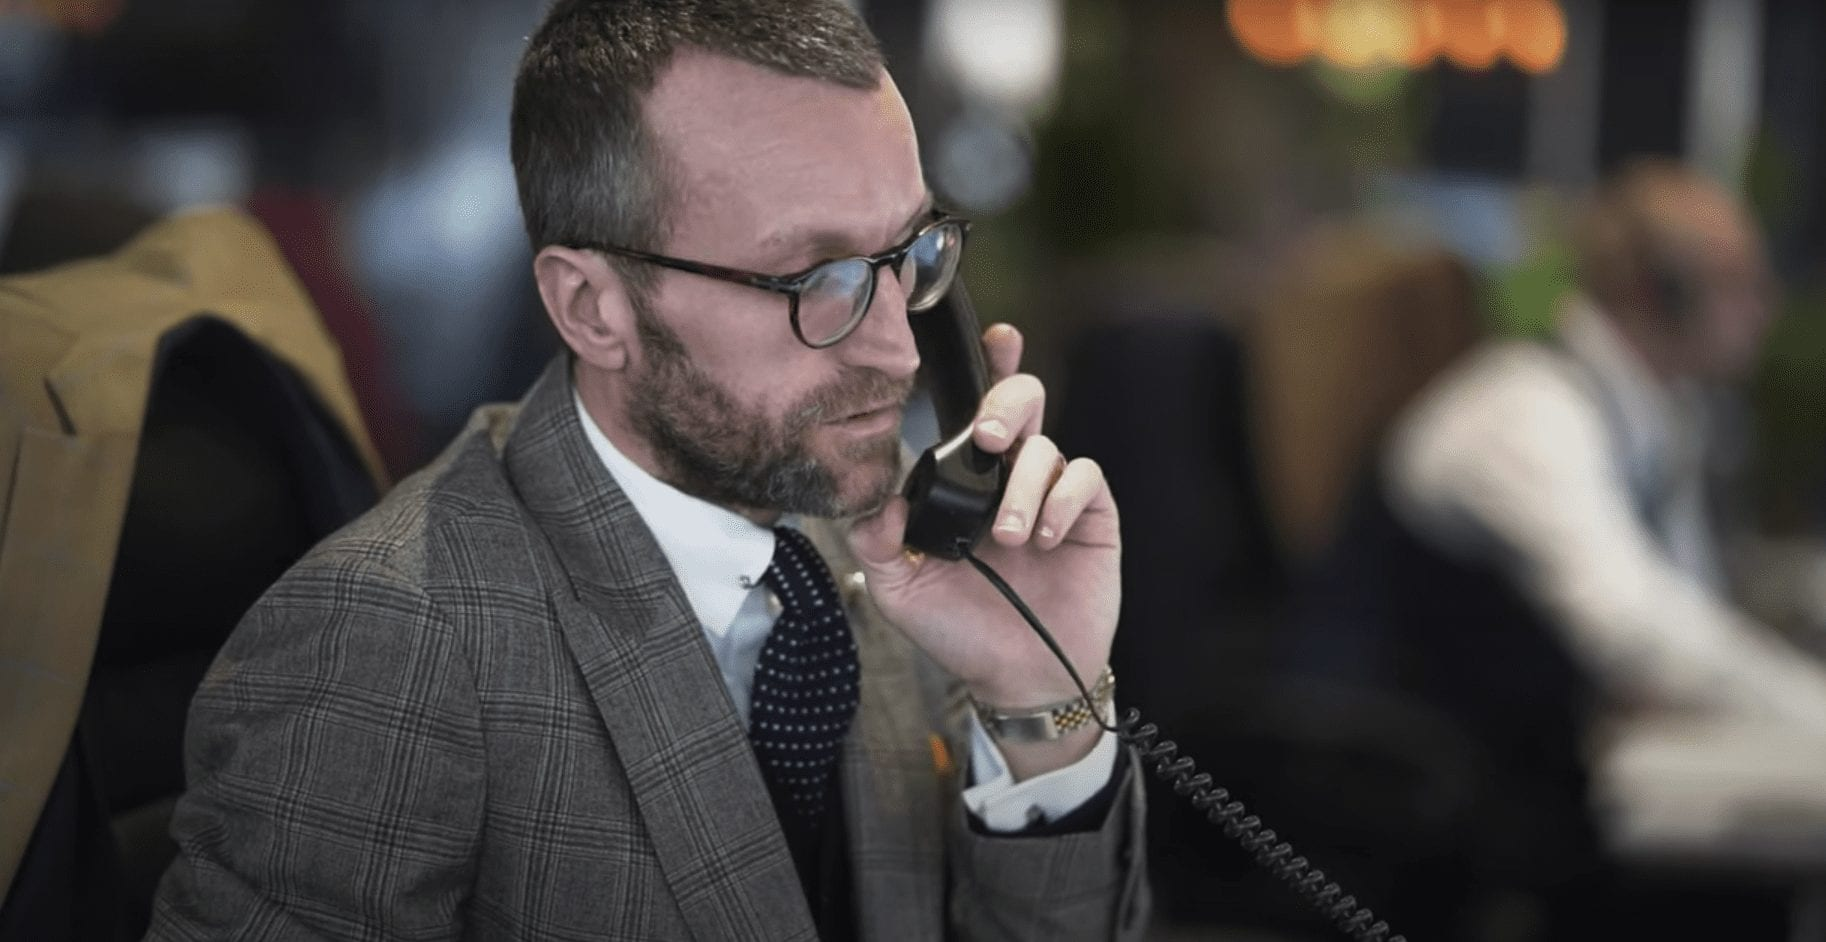 wealth-director-on-phone